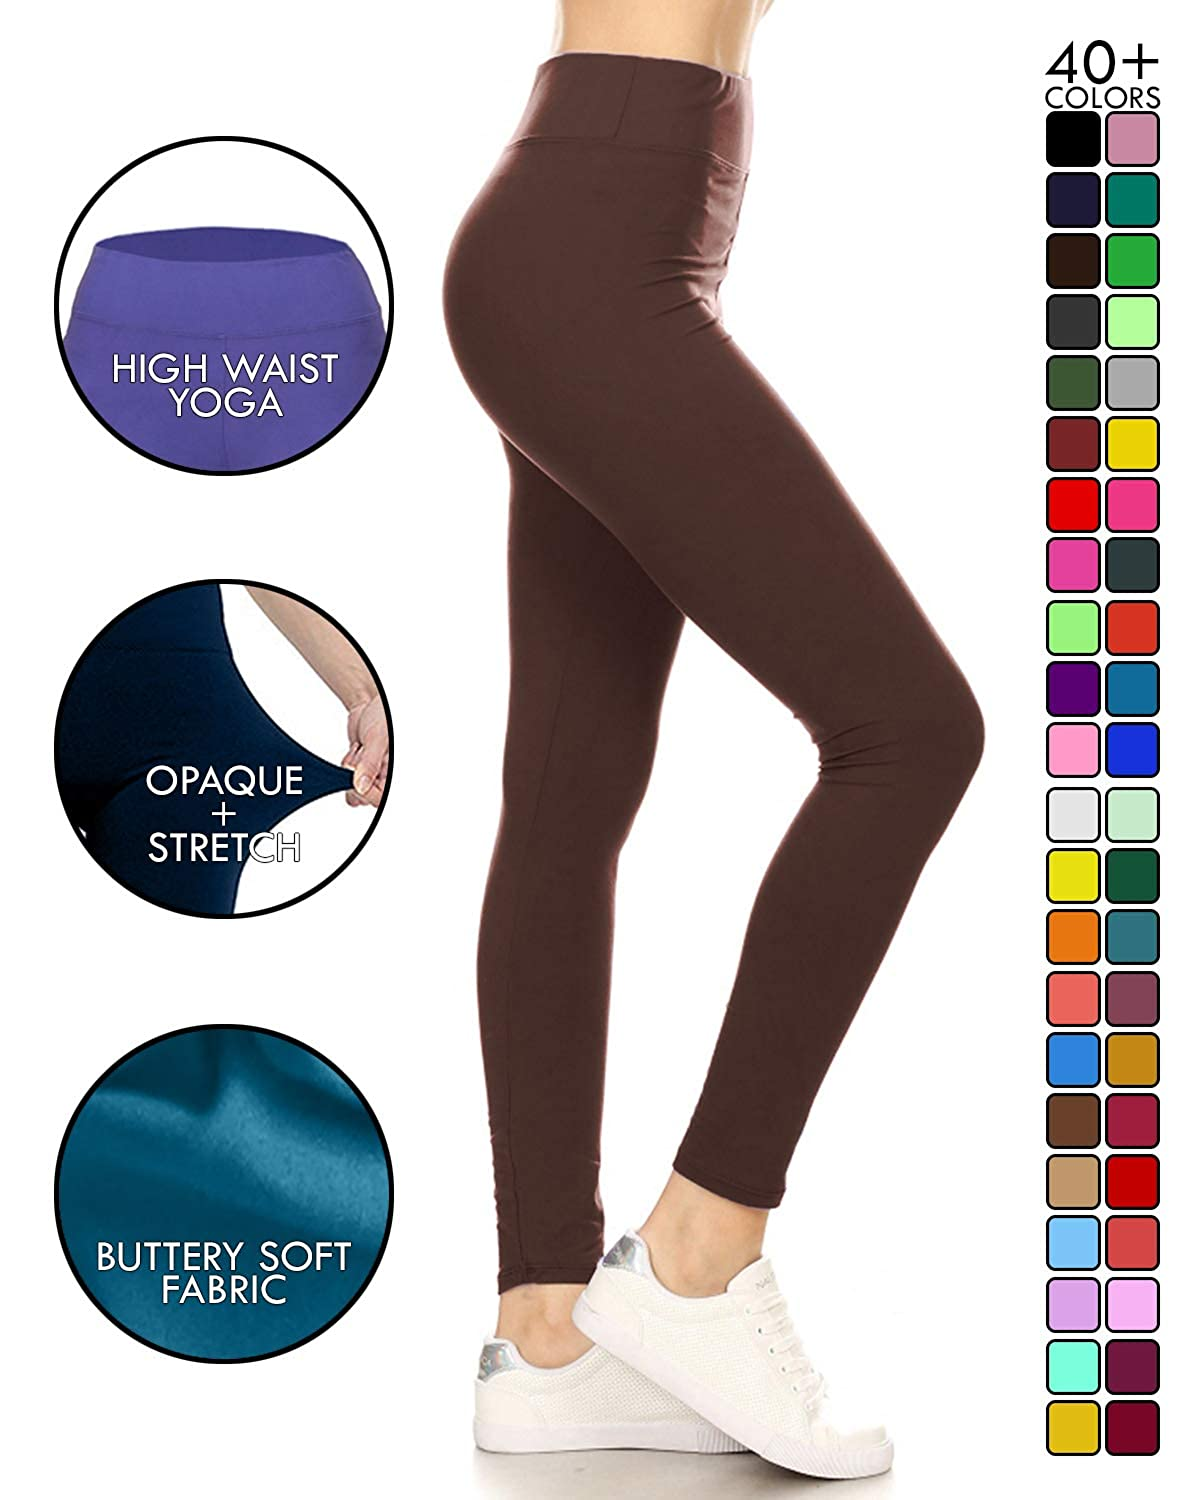 9814890c1454b8 Leggings Depot High Waisted Leggings - Buttery Soft Yoga Waisted - 40+  Colors at Amazon Women's Clothing store: